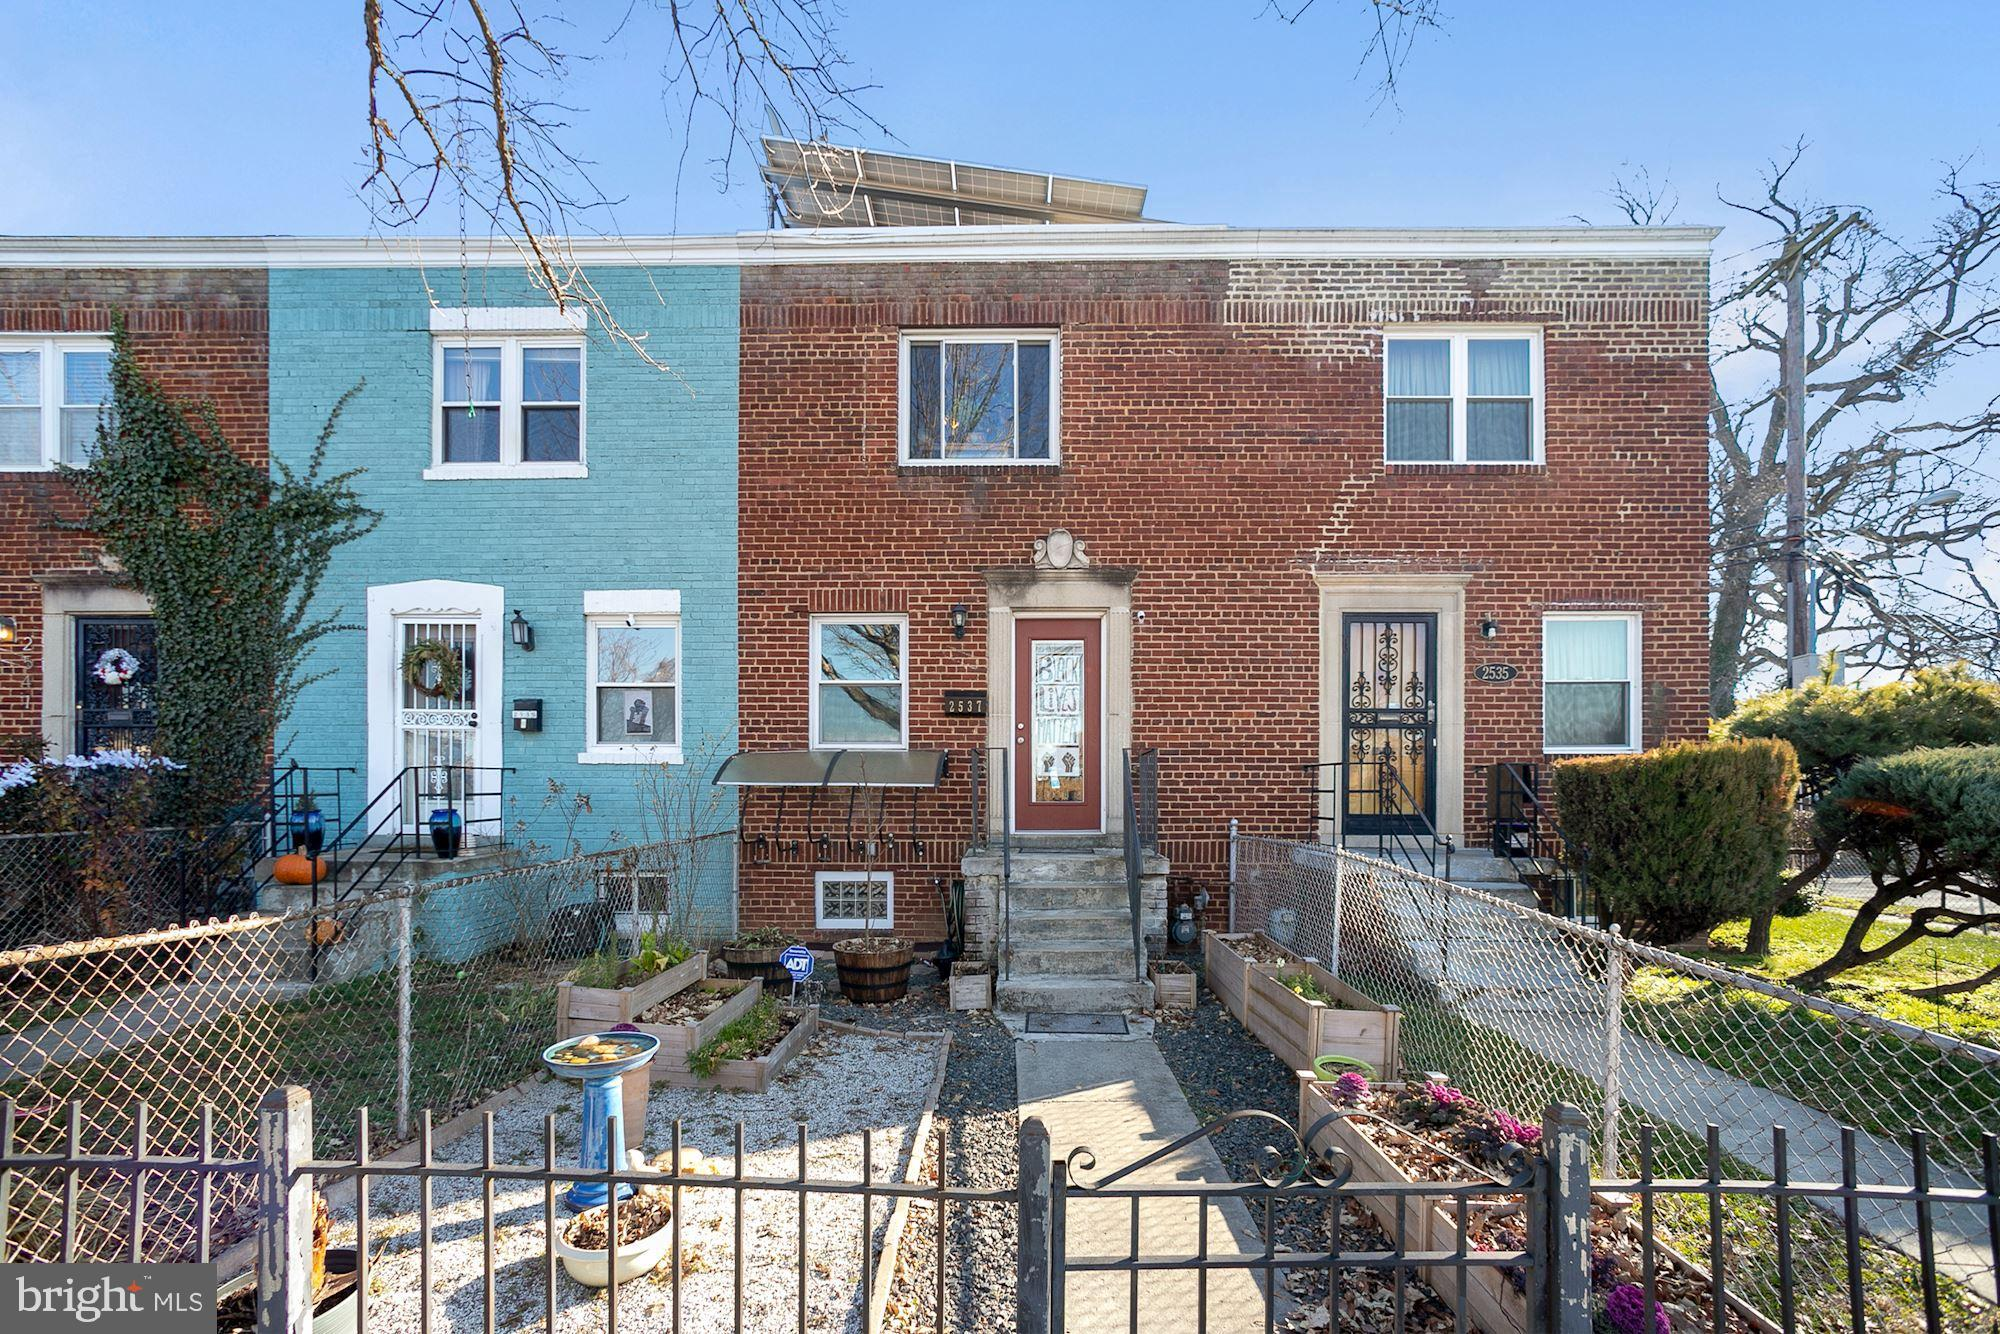 Renovated 2 bedroom 2 bath townhouse located in the Stronghold neighborhood.  The property features